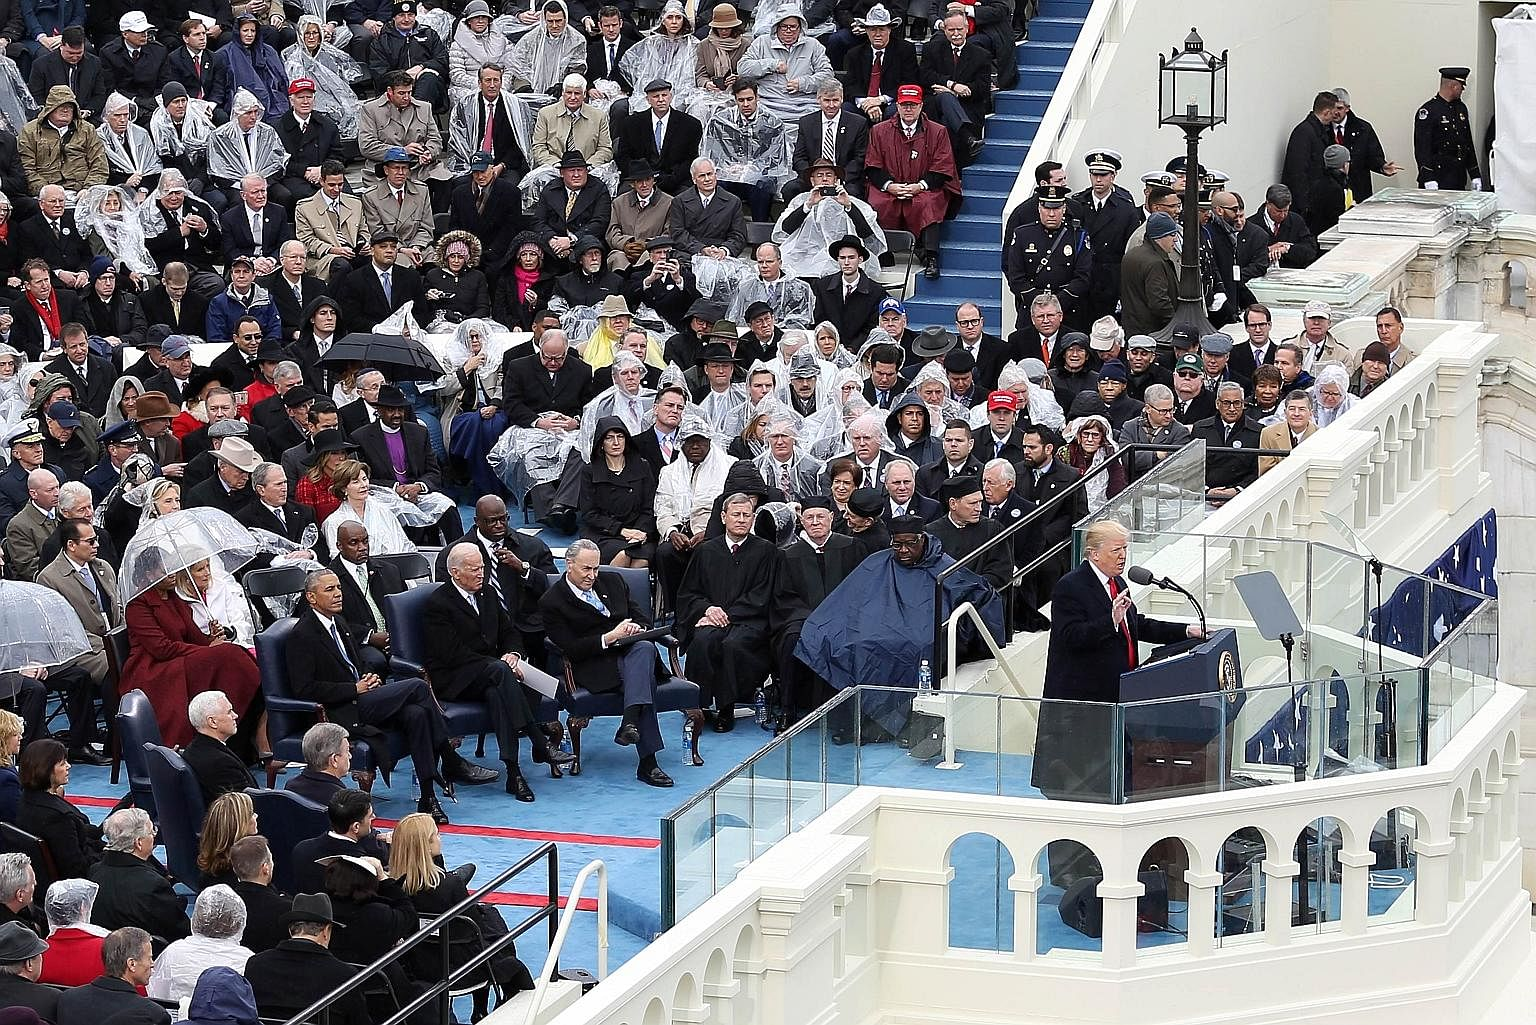 US President Donald Trump delivering his inaugural address in Washington on Jan 20 last year. The writer, an imam at the Islamic Institute of Orange County, says the past year has not always been easy, but during challenging times, he reminds his com